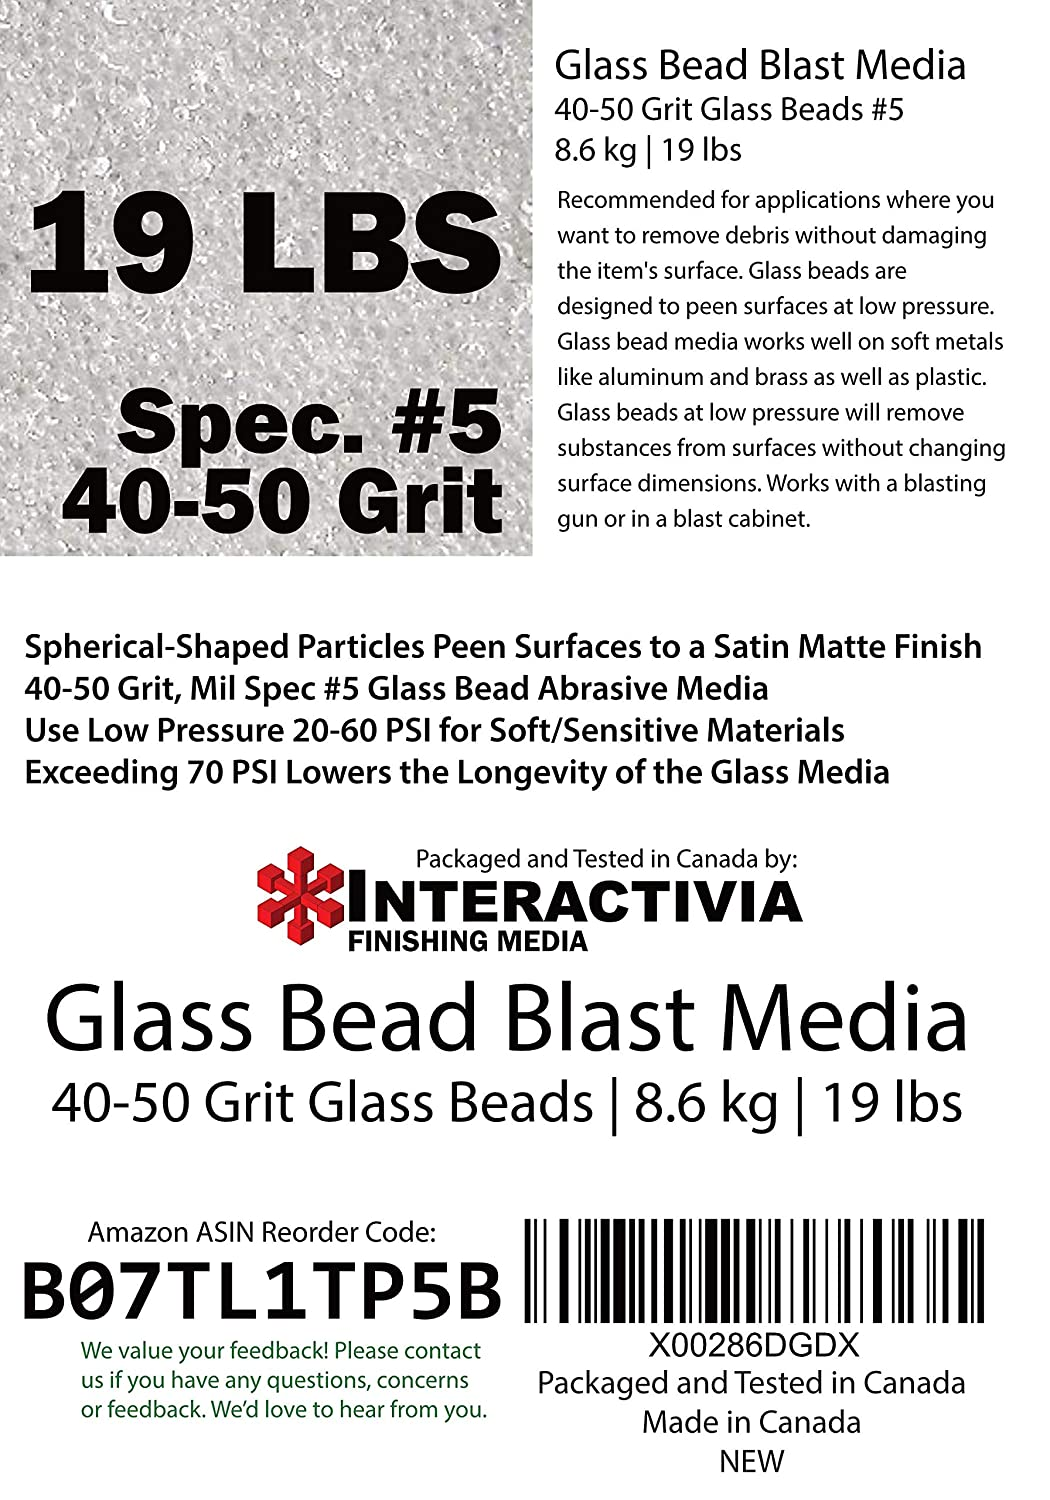 Coarse to Medium Blasting Abrasive Media Large Beads for Peening and Finishing Spec No 5 for Blast Cabinets Or Sand Blasting Guns 40-50 Mesh or Grit 19 lb or 8.6 kg #5 Glass Beads